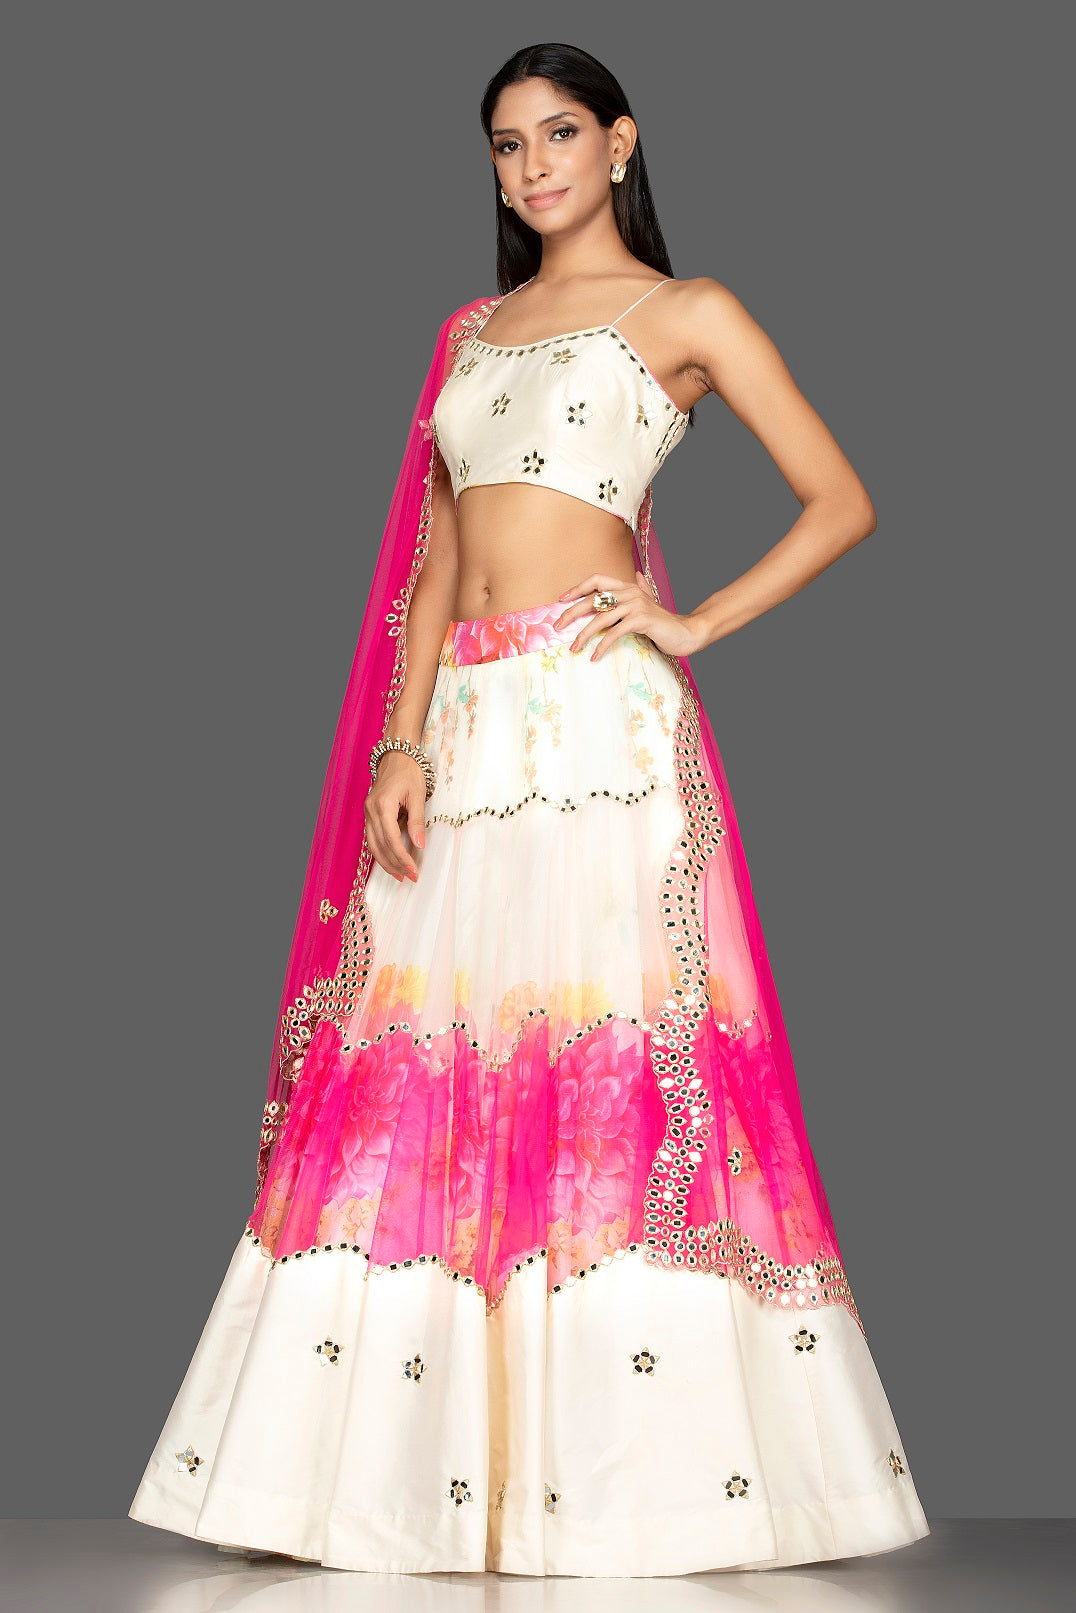 Buy beautiful cream and pink organza mirror work lehenga online in USA with matching dupatta. Spread ethnic elegance on weddings and special occasions in splendid designer lehengas, Indowestern dresses crafted with exquisite Indian craftsmanship from Pure Elegance Indian fashion store in USA.-full view